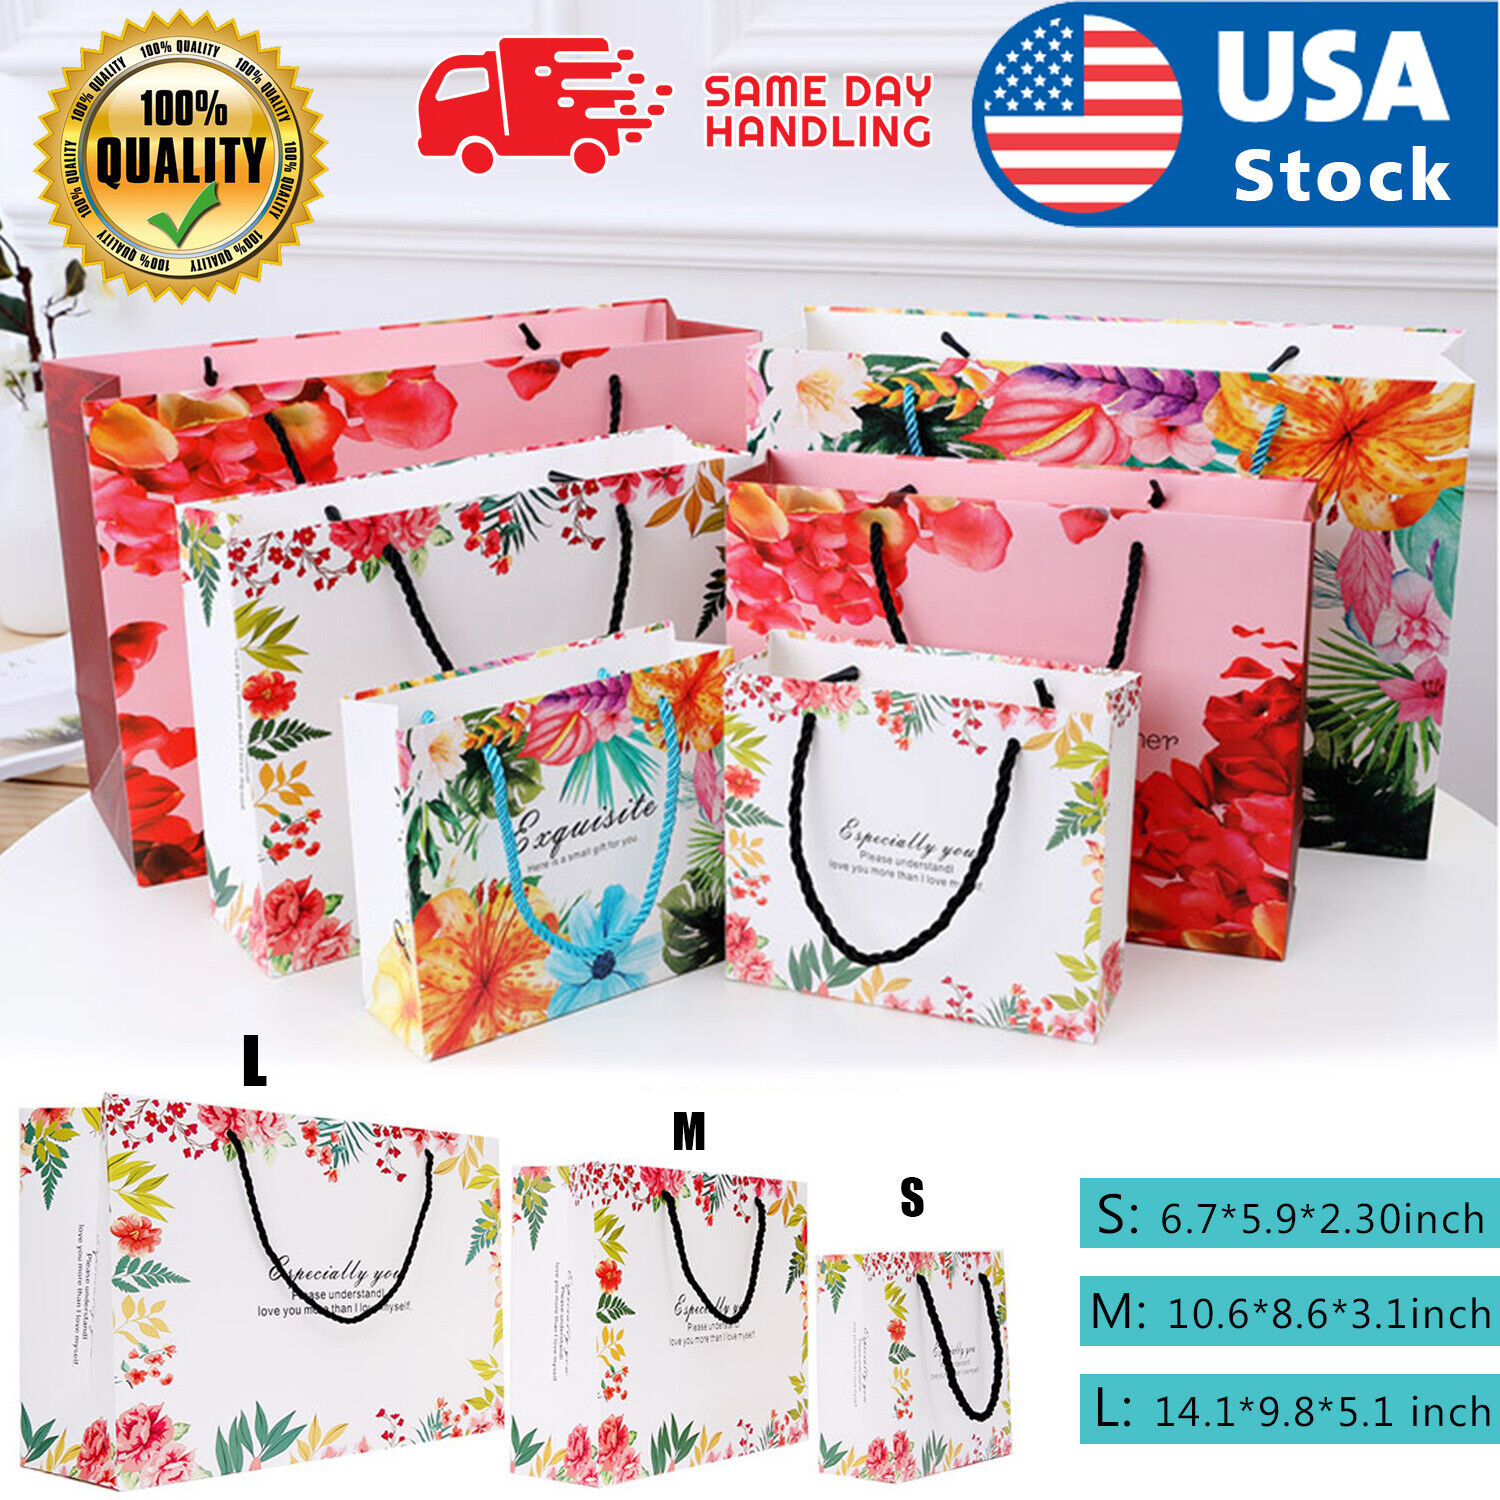 USA 10Pcs Gift Bags Paper Wedding Party Candy Loot Bags with Nylon Handles S/M/L Greeting Cards & Party Supply